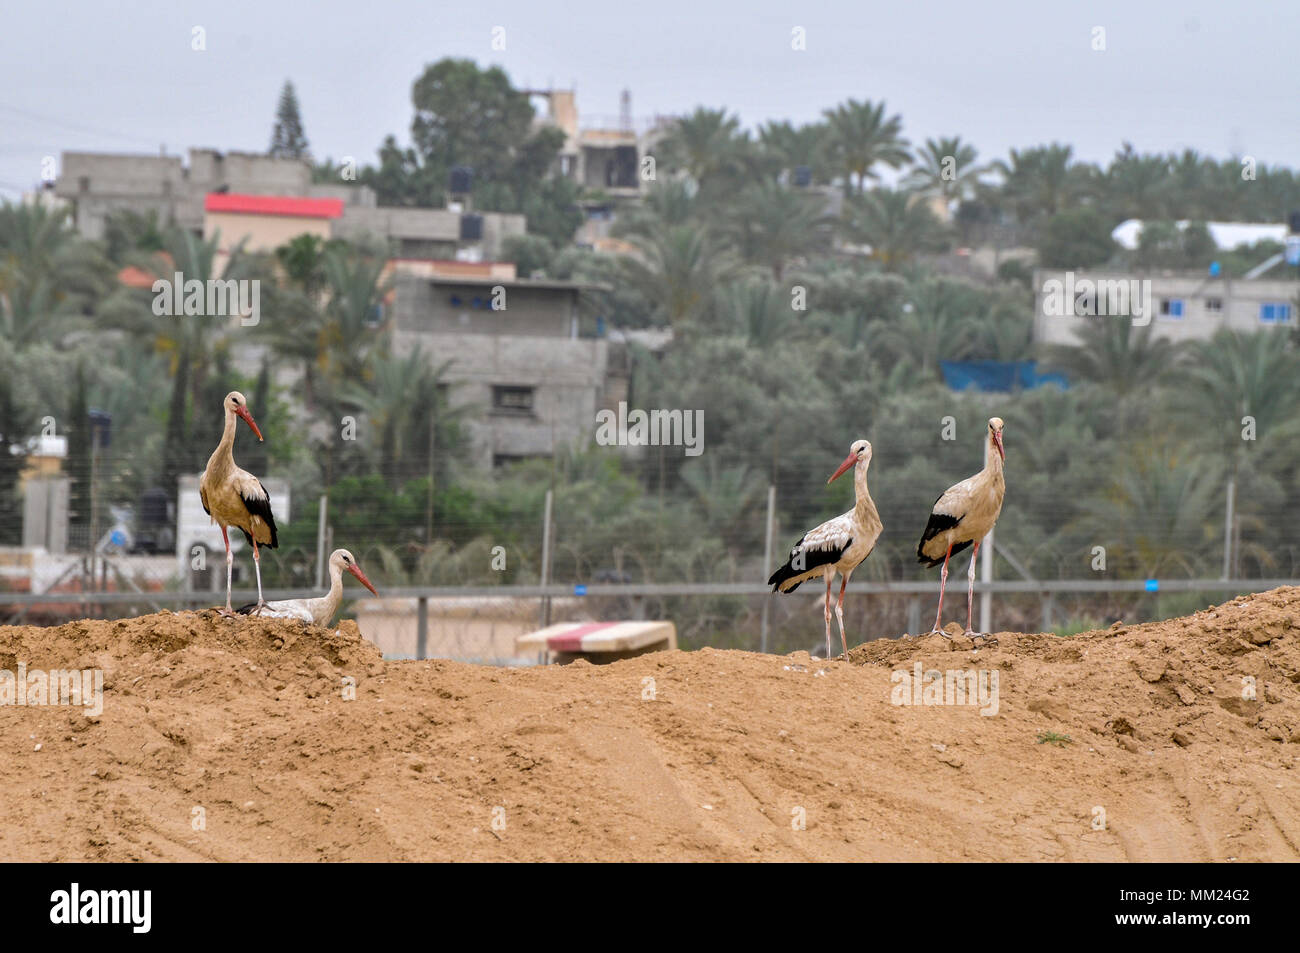 White Stork (Ciconia ciconia) foraging for food on a landfill. White storks are very large wading birds that feed on fish, frogs and insects, as well  - Stock Image